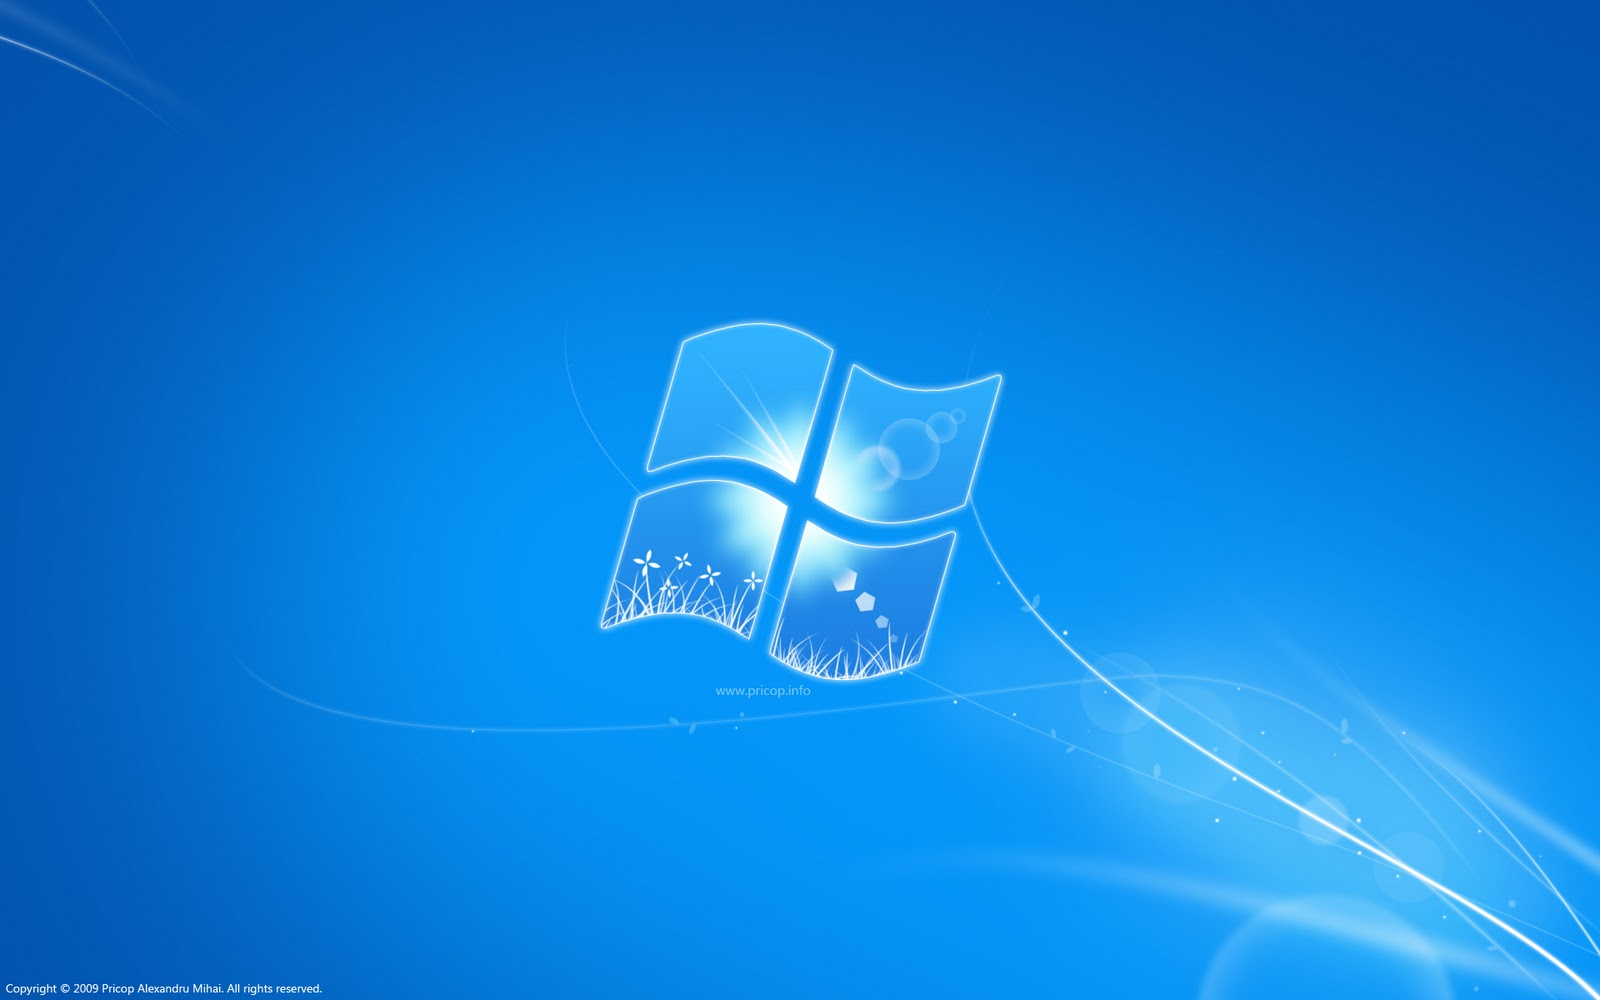 windows8wallpapers: windows8 wallpapers free download